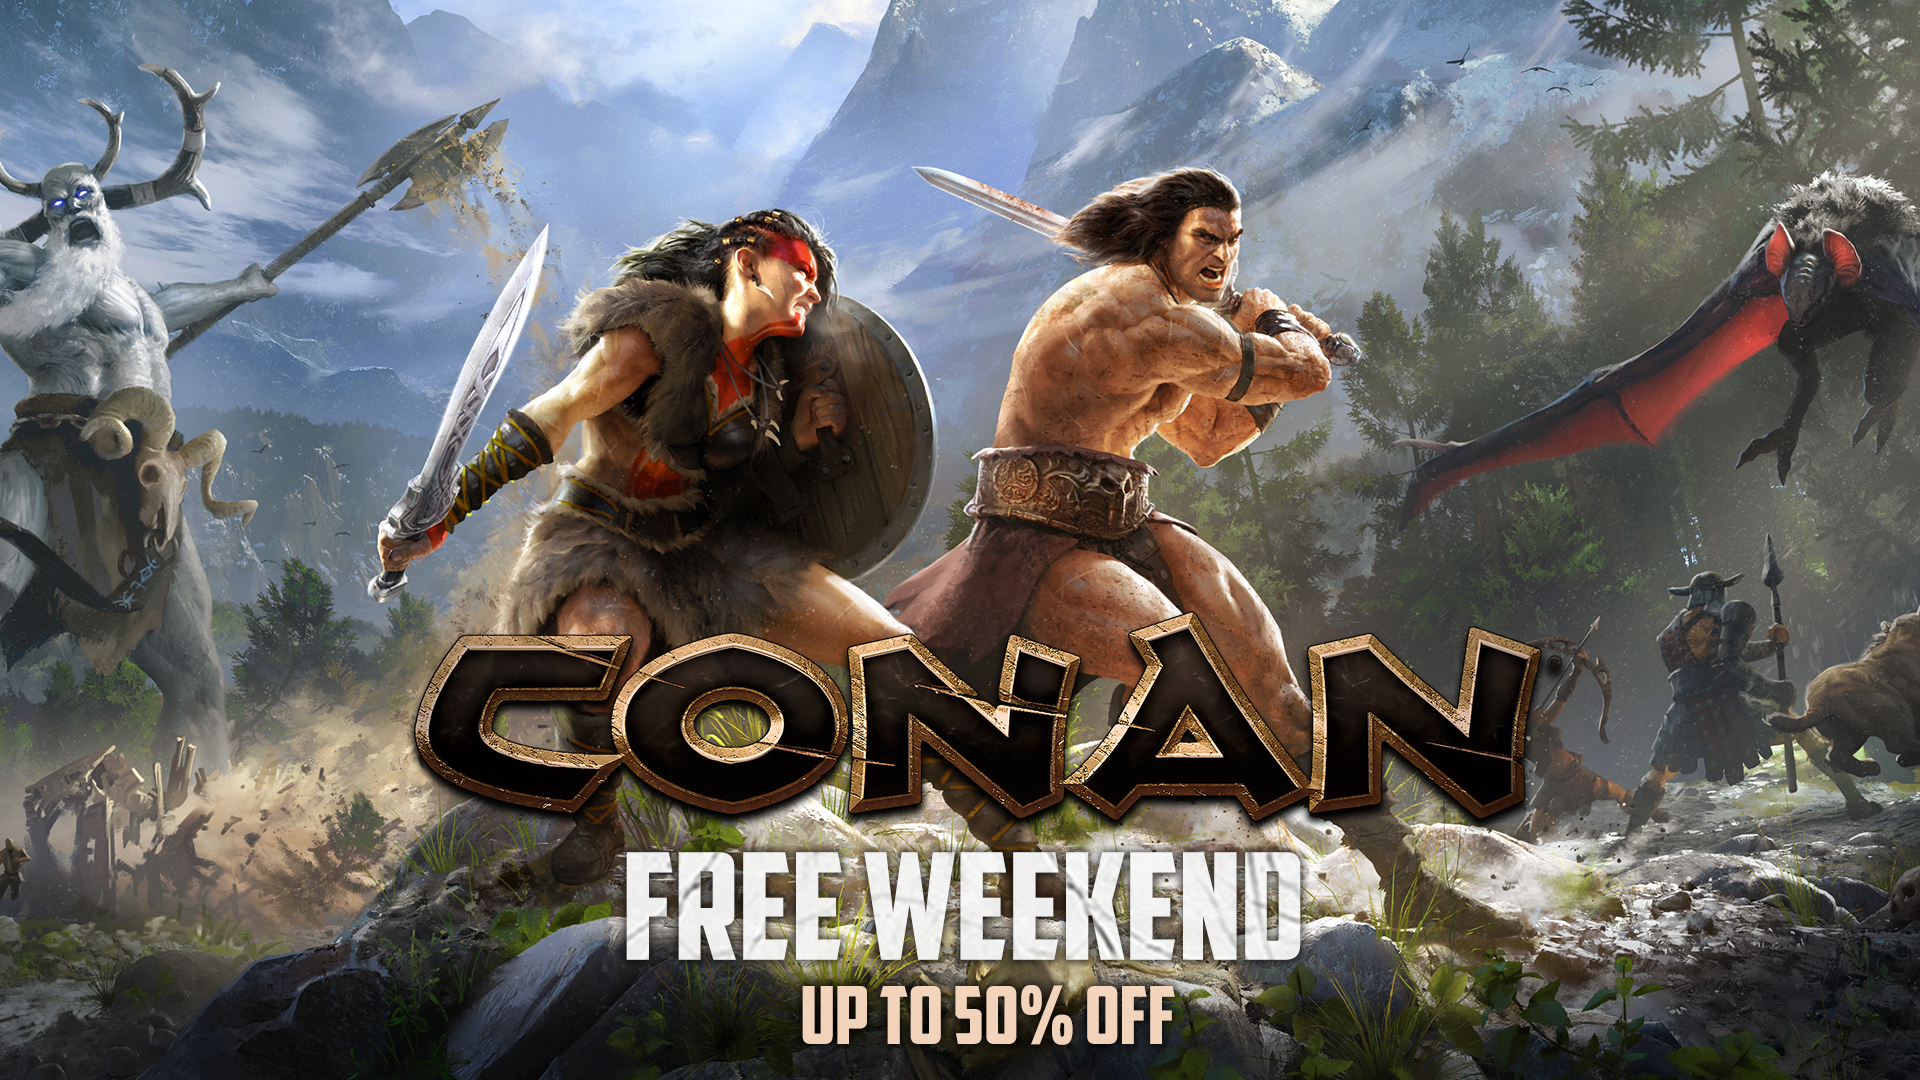 PC Games: [STEAM] Weekend Deal: Conan Weekend – Conan Exiles (50% off – $19.99), Conan Exiles Deluxe Edition (50% off – $34.99), Conan Unconquered (30% off – $13.99) – free weekend